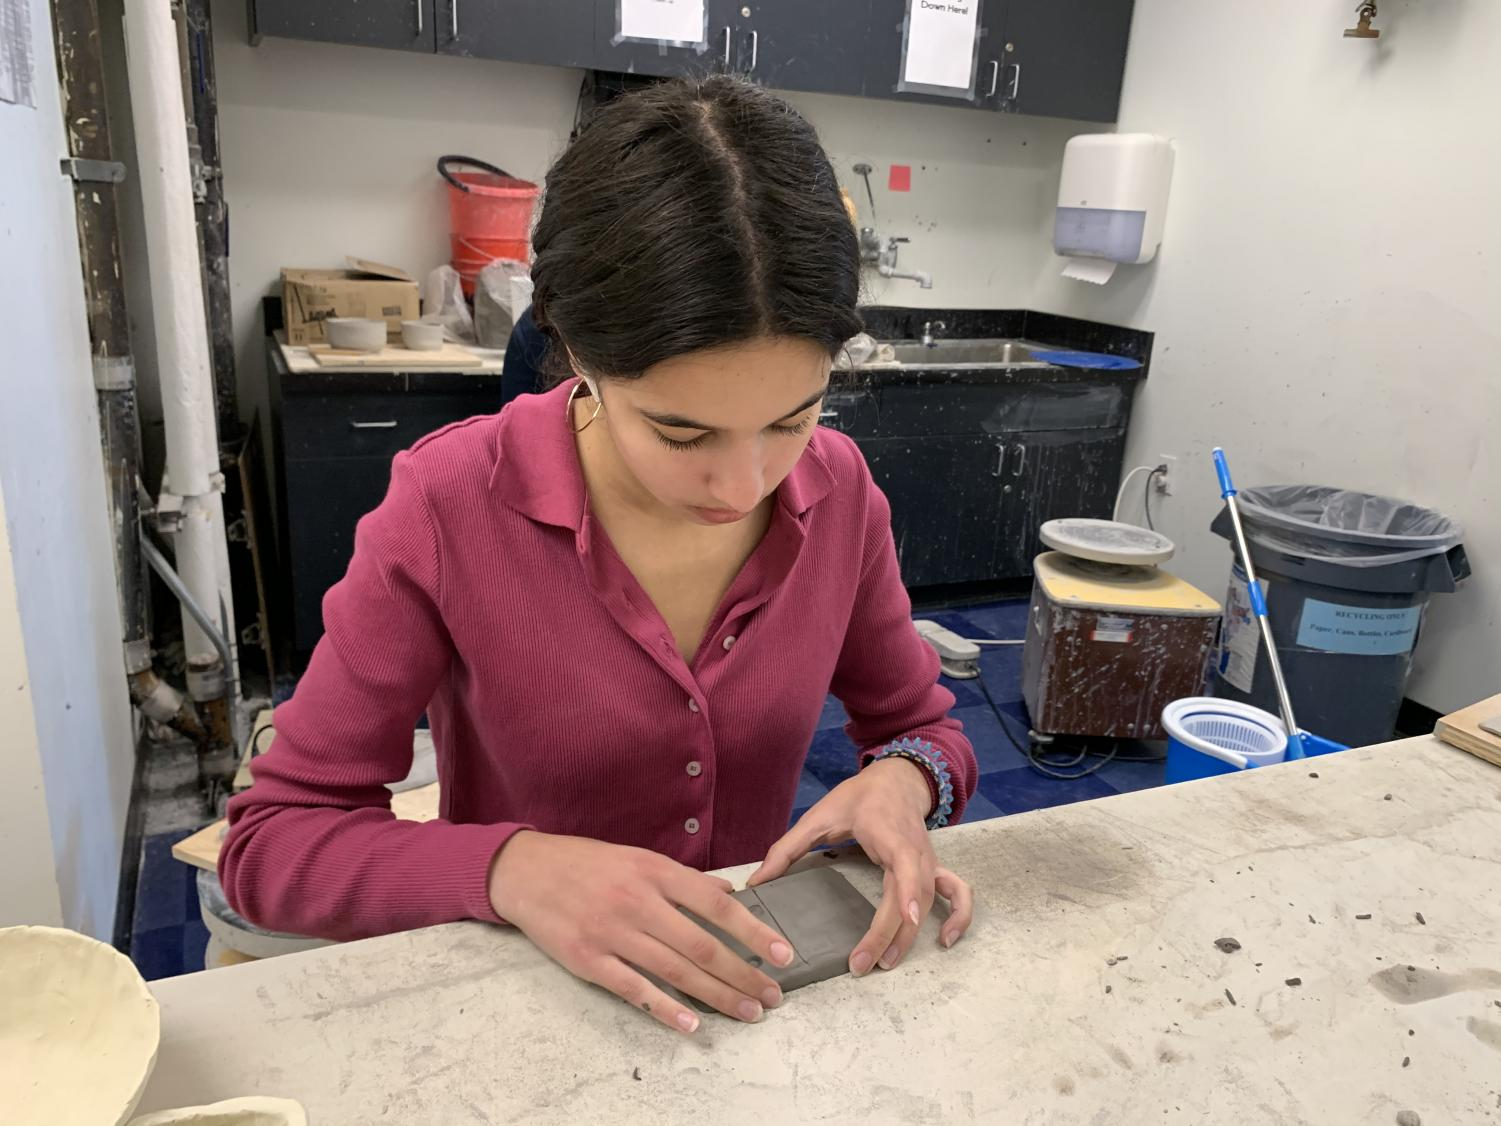 Sophomore Haya Jadallah creates a domino out of clay for her project that represents the domino effect of the contamination of the ocean. This Art Foundation II project pushes students to reflect the environment around them in their work.